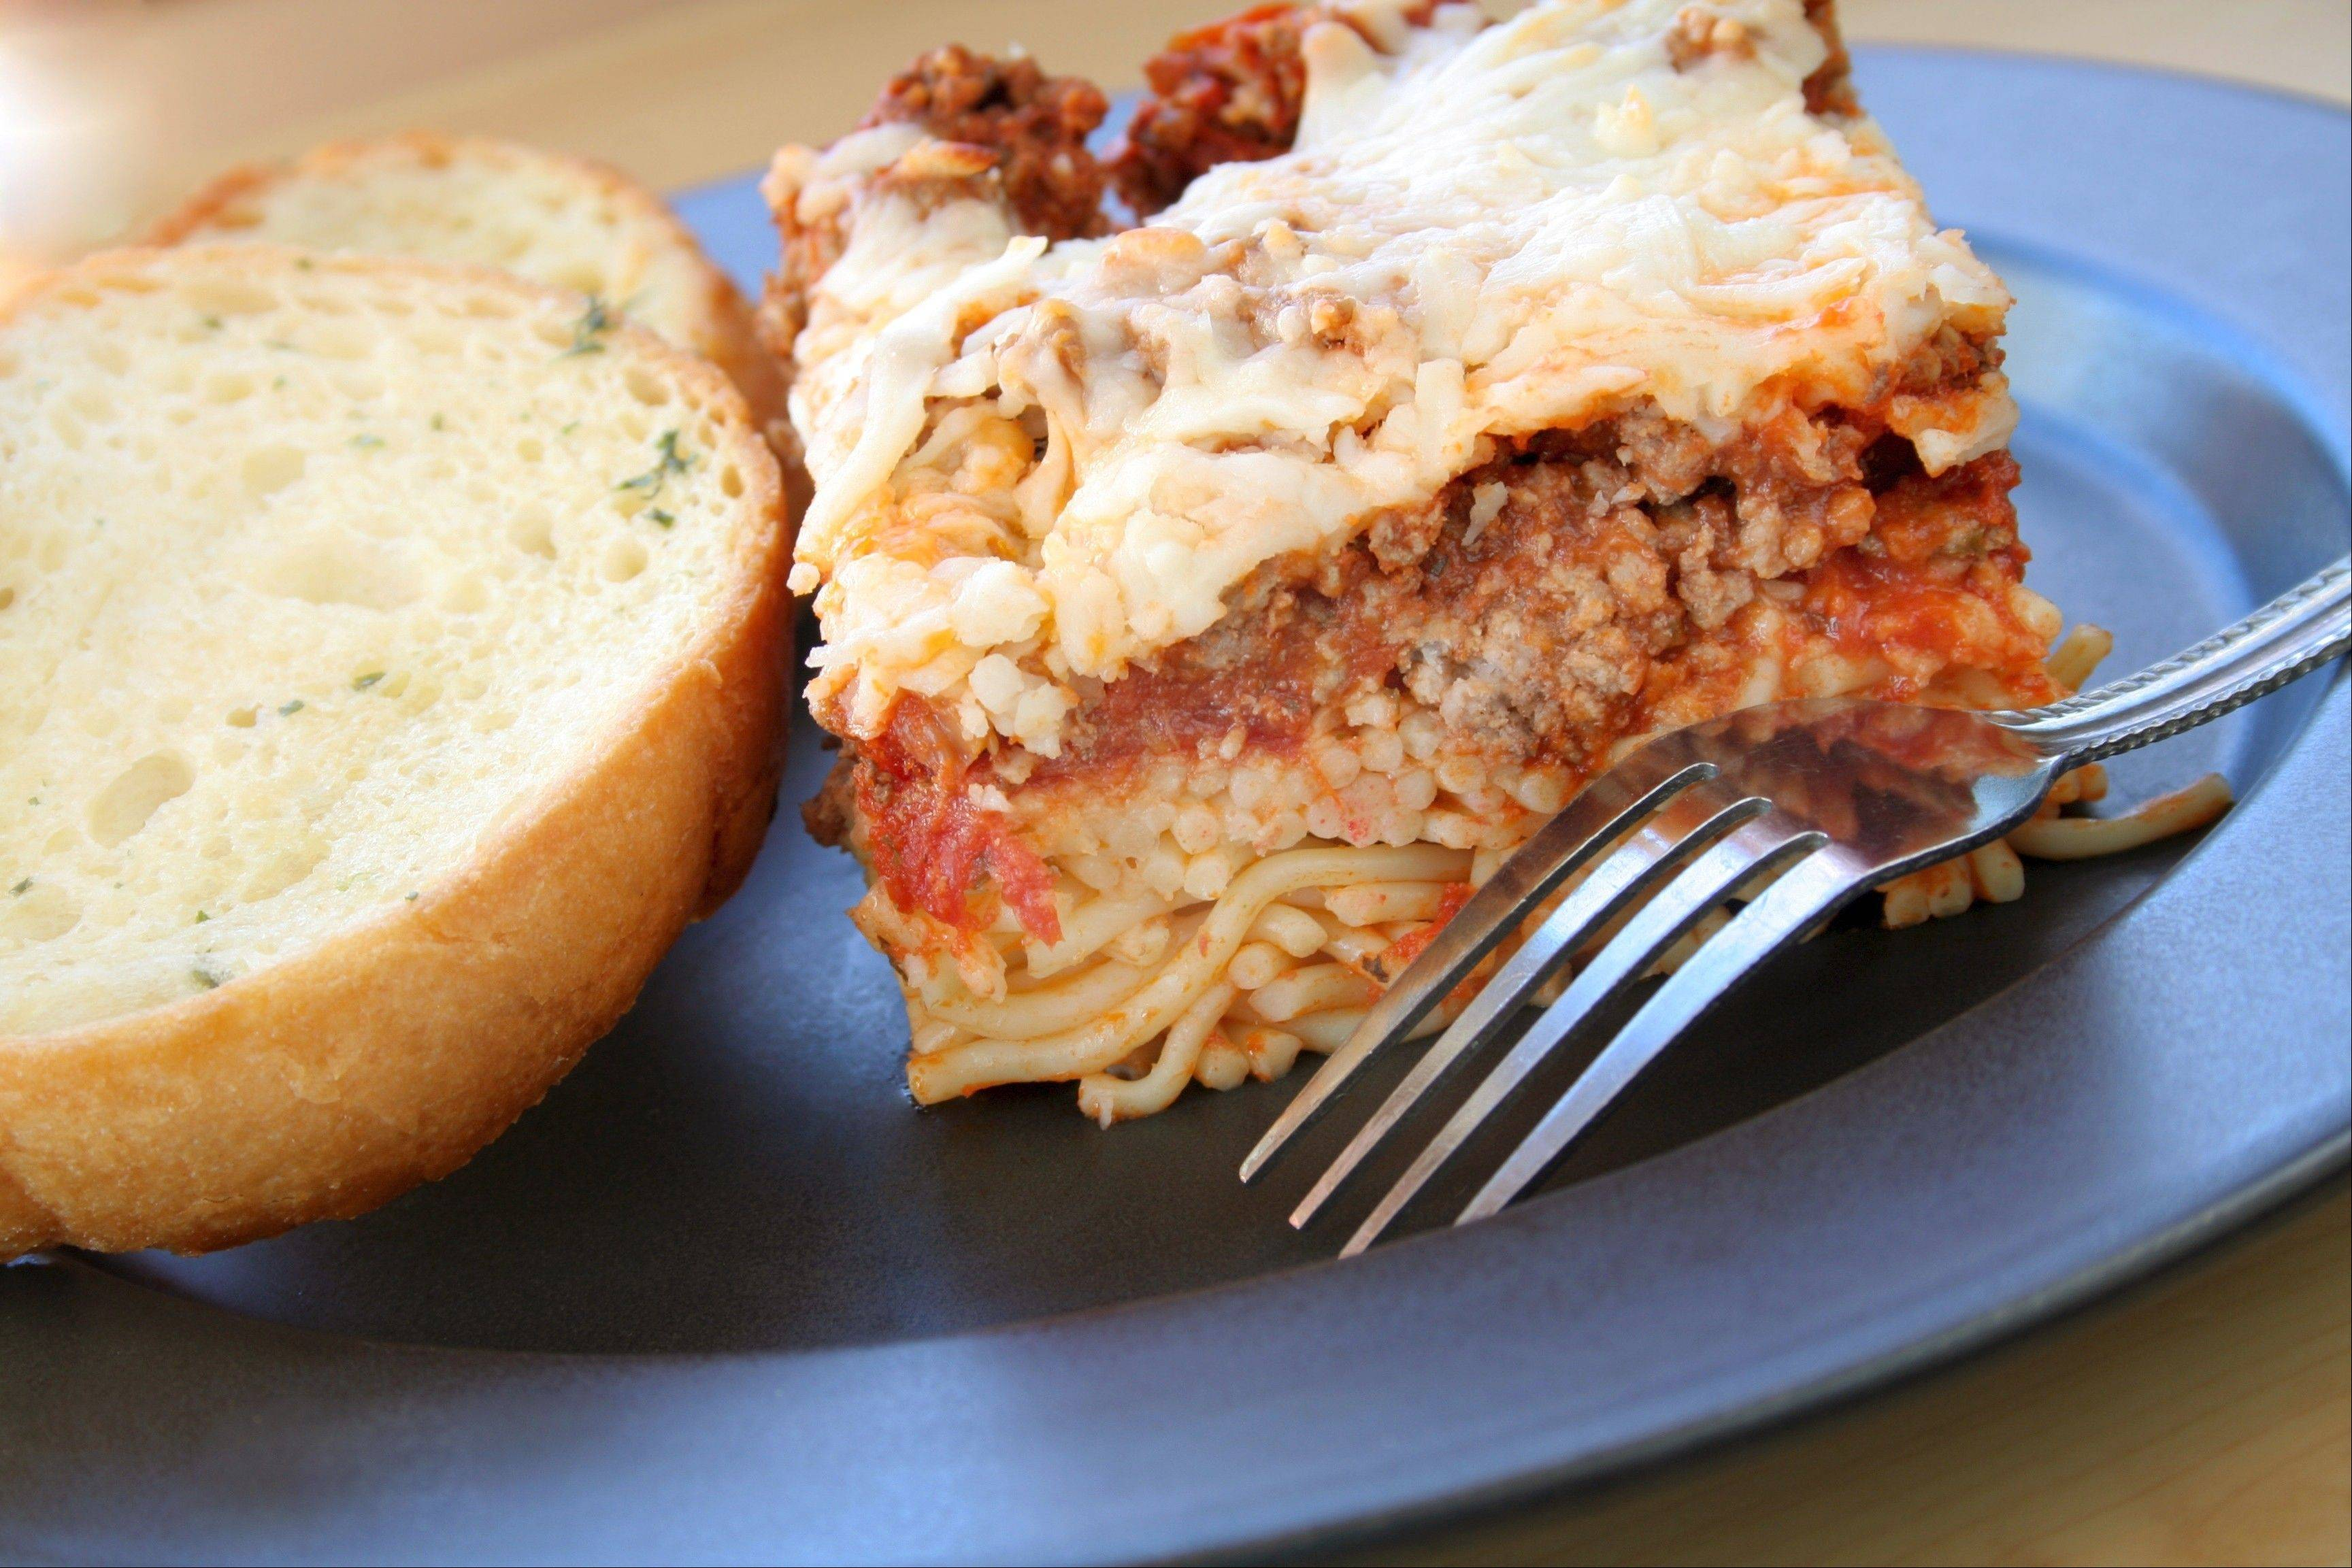 Lean ground beef and low-sodium ketchup go into Don Mauer's healthier version of baked spaghetti.